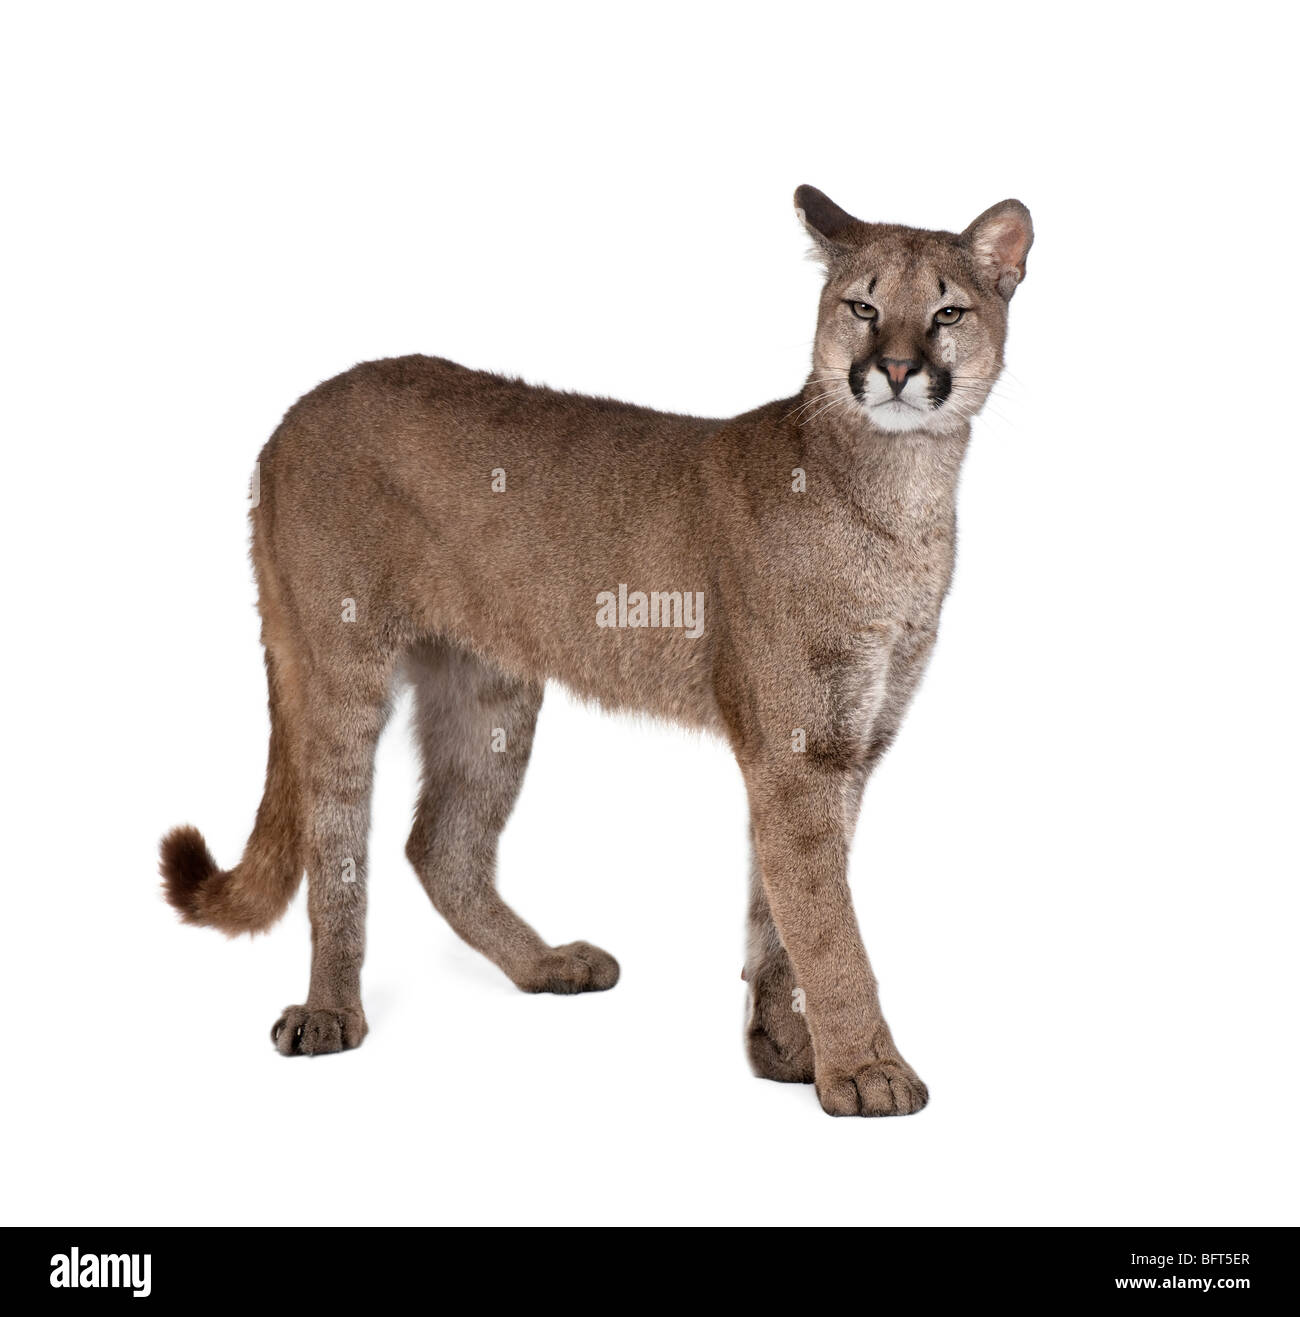 Portrait of Puma cub, Puma concolor, 1 year old, standing in front of white background - Stock Image